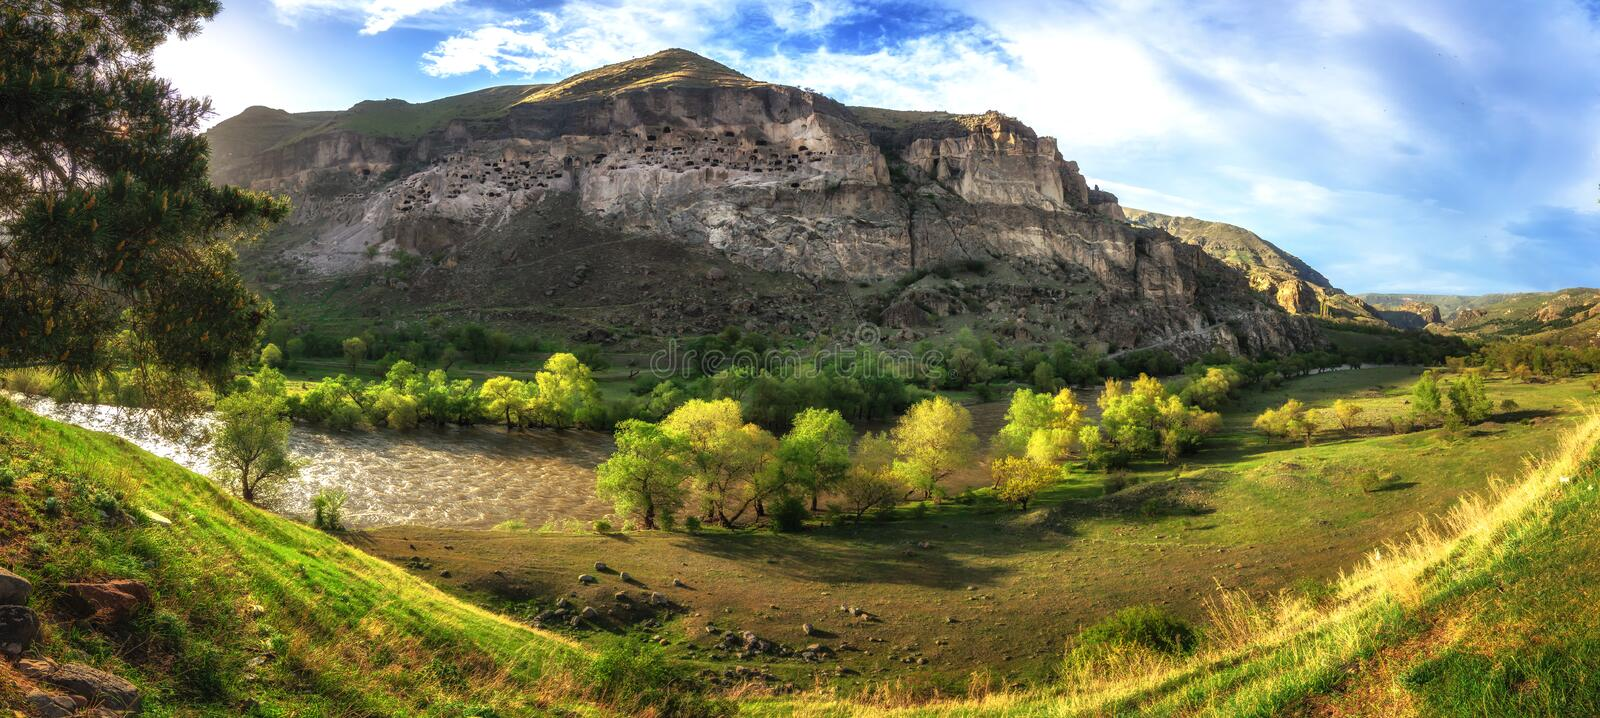 Vardzia cave monastery and ancient city in mountain rocks, Georgia. Main attraction. Panoramic view stock photography